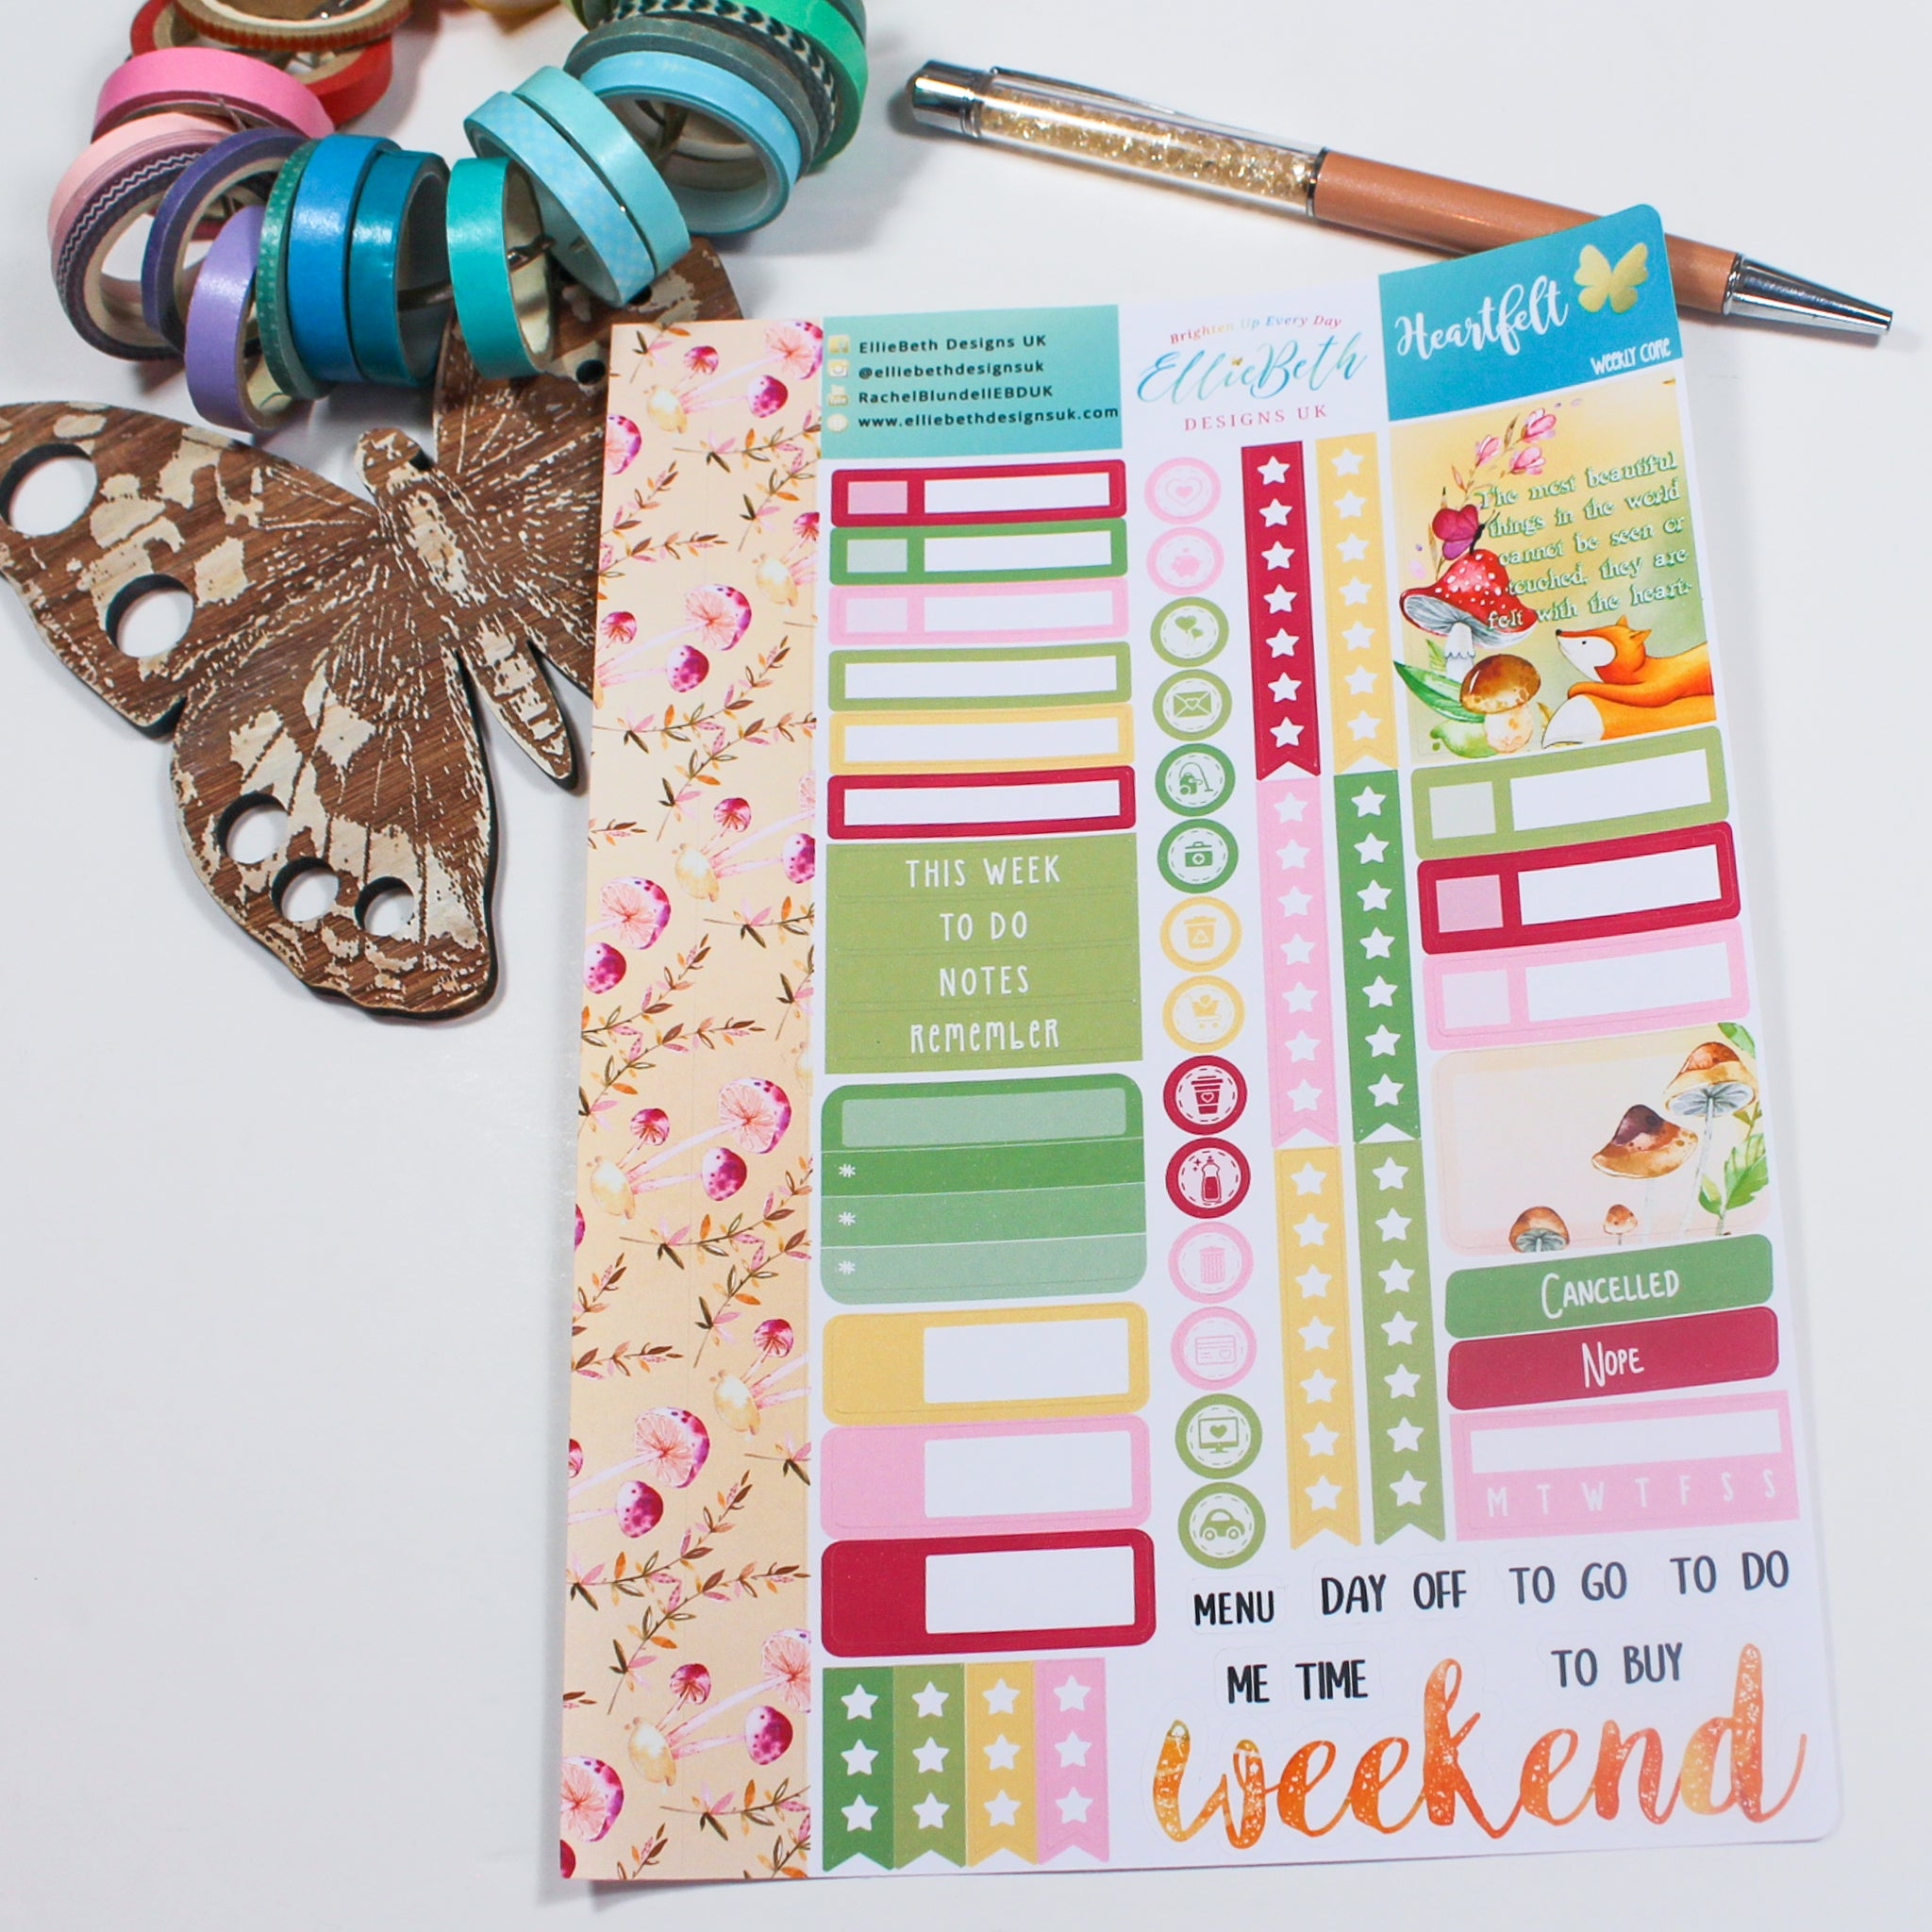 'Heartfelt' - Weekly Core Sheet - A5 binder ready planner stickers